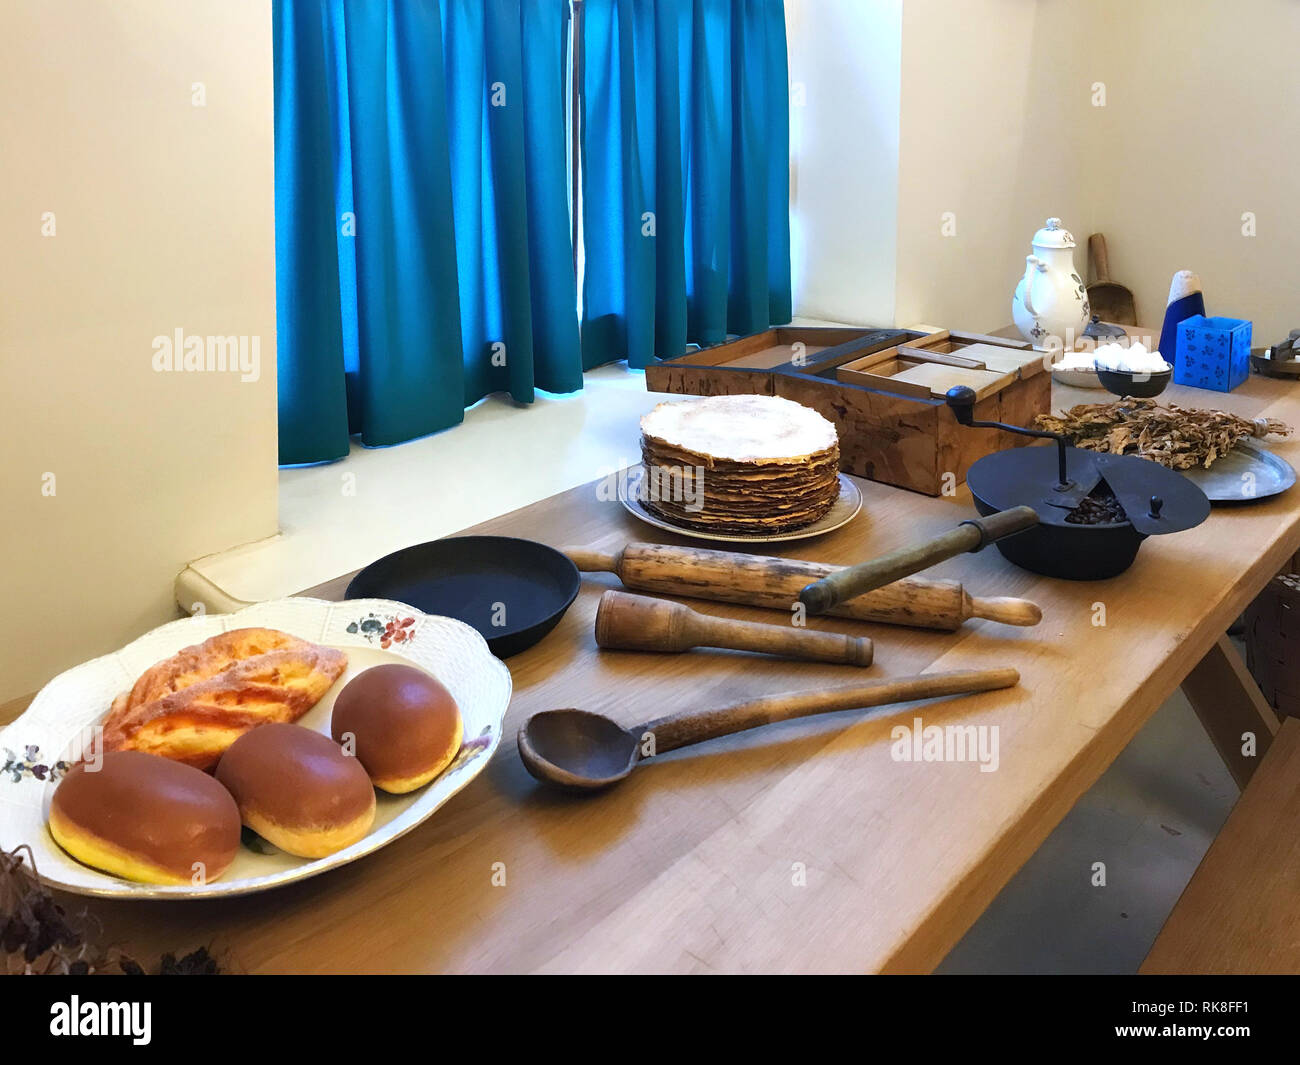 Kitchen interior with a fragment of a dinner table served by food and kitchen utensils. Stock Photo